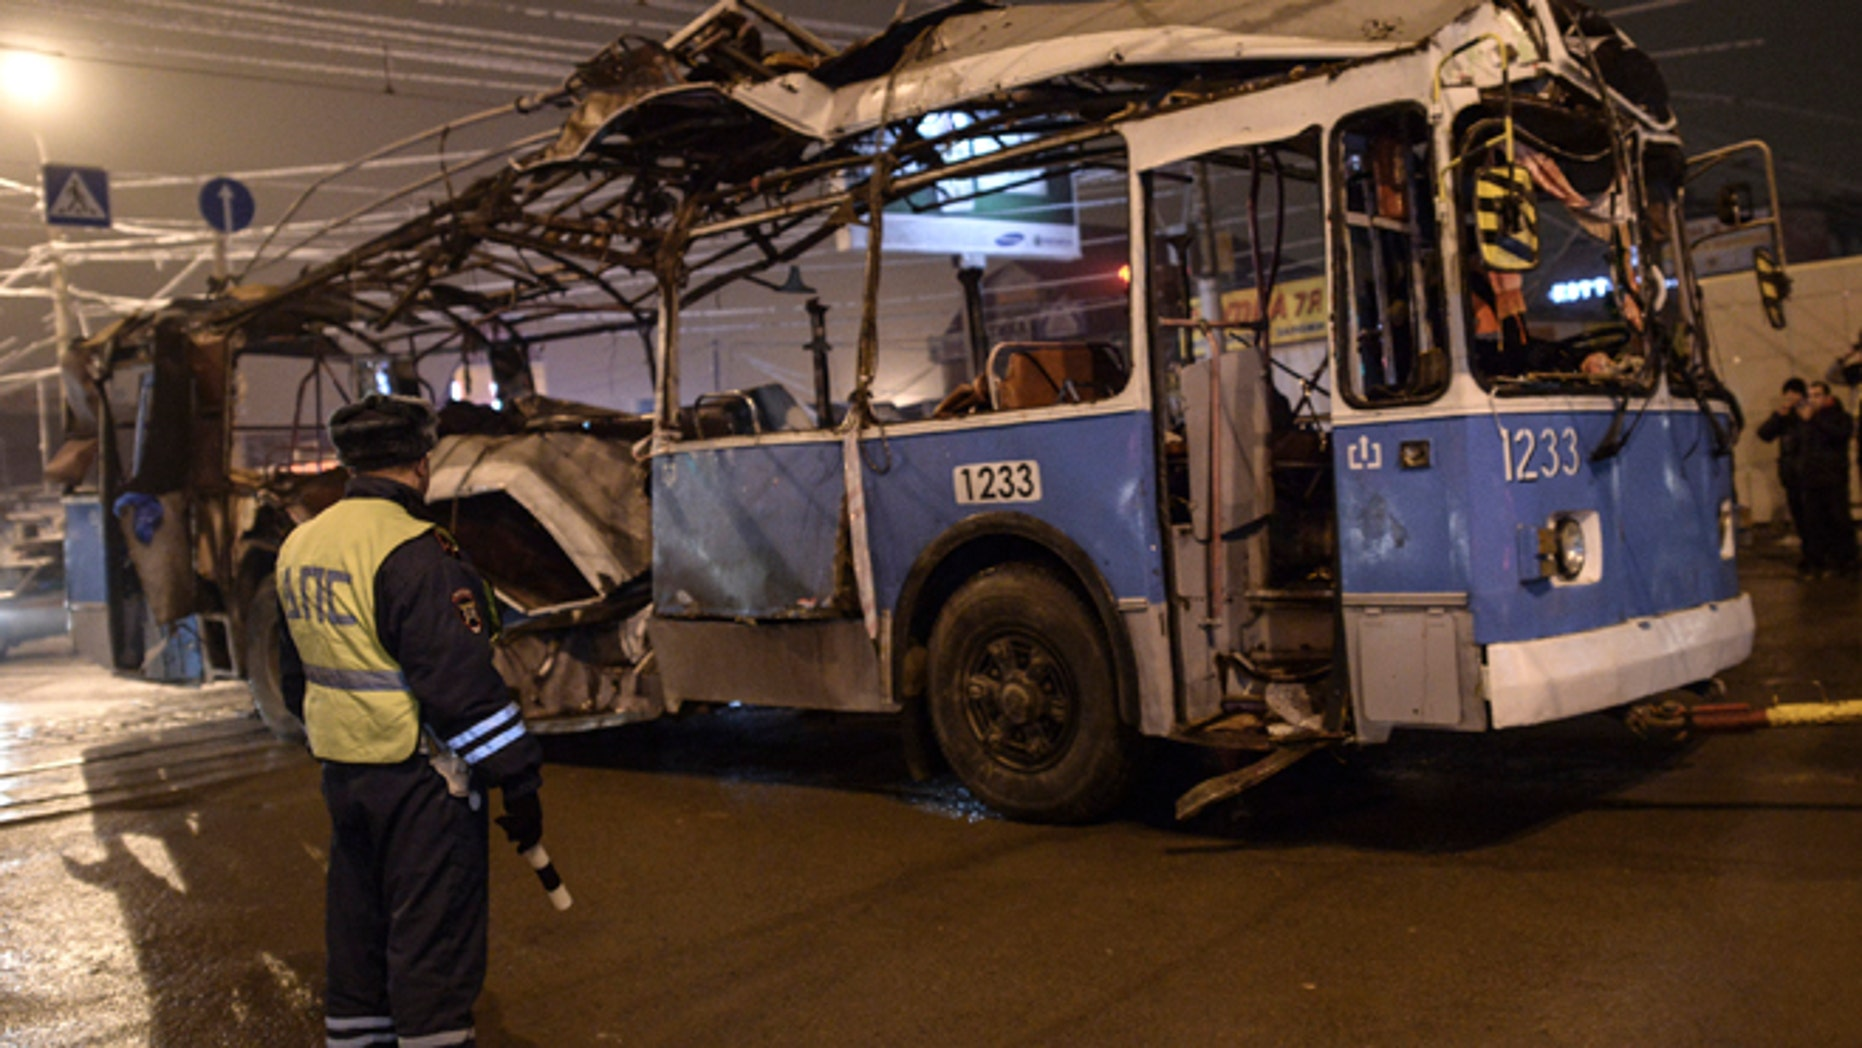 Dec. 30, 2013: A policeman watches as a bus, destroyed in an earlier explosion, is towed away in Volgograd.